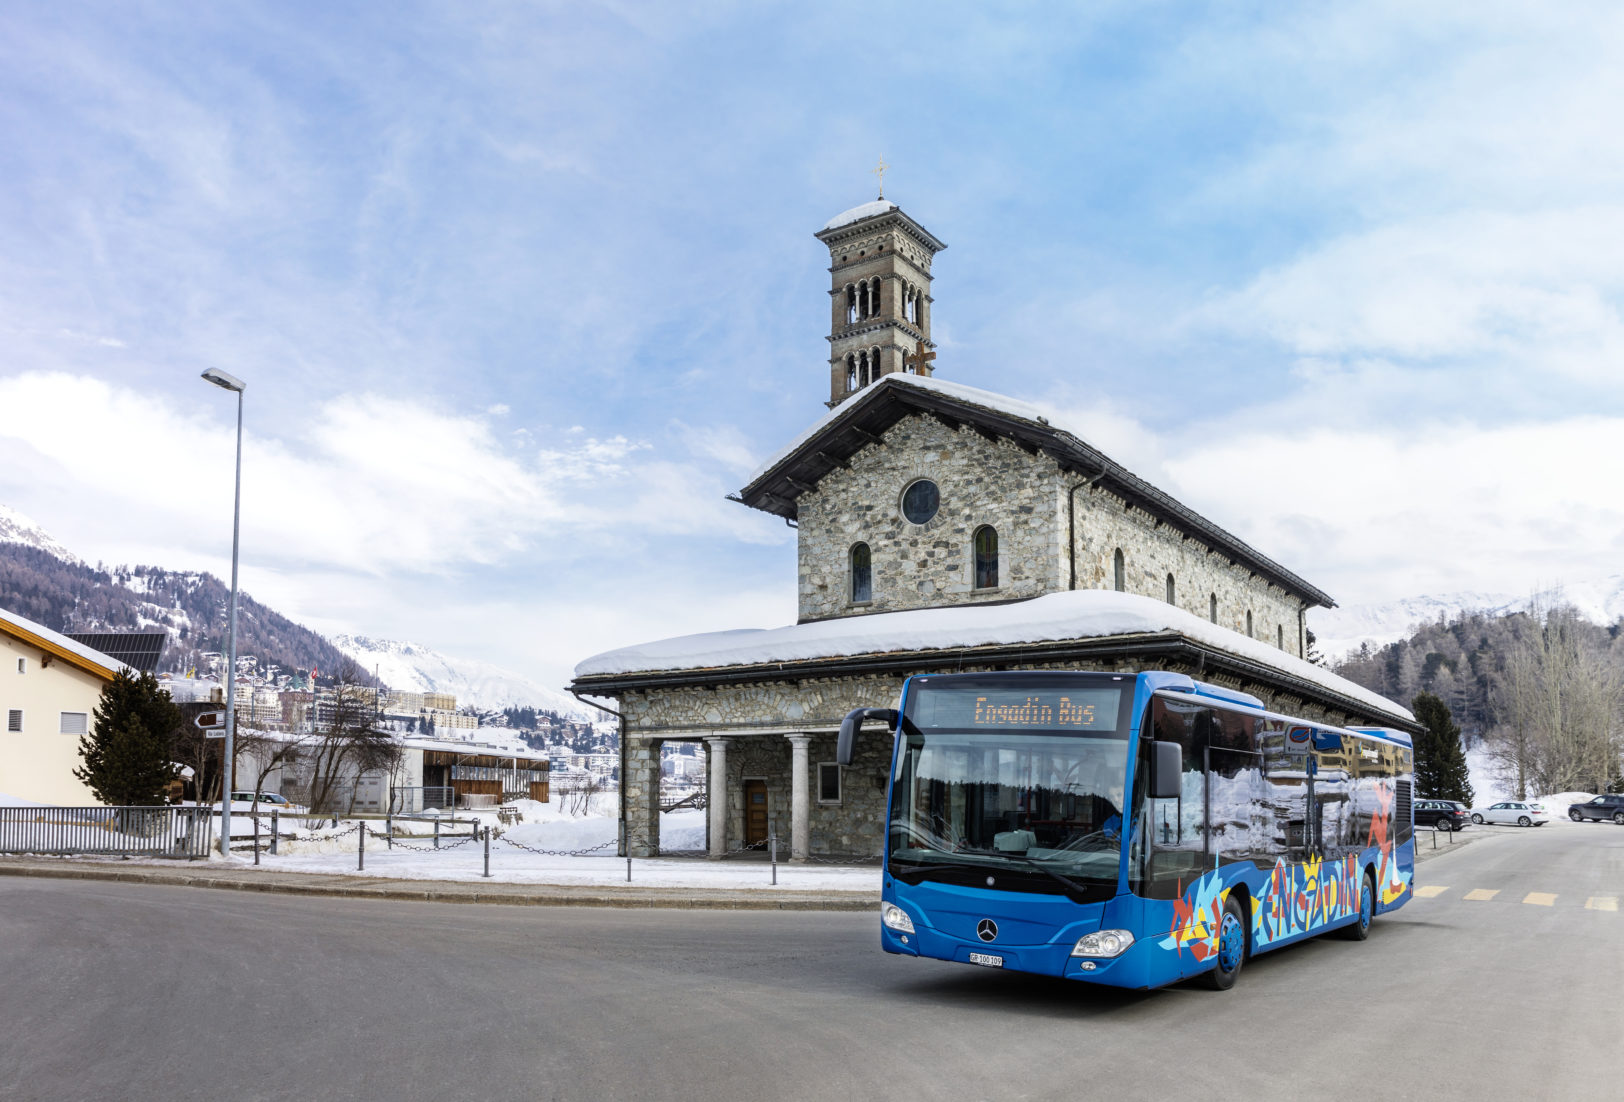 Engadin Bus in St. Moritz Bad